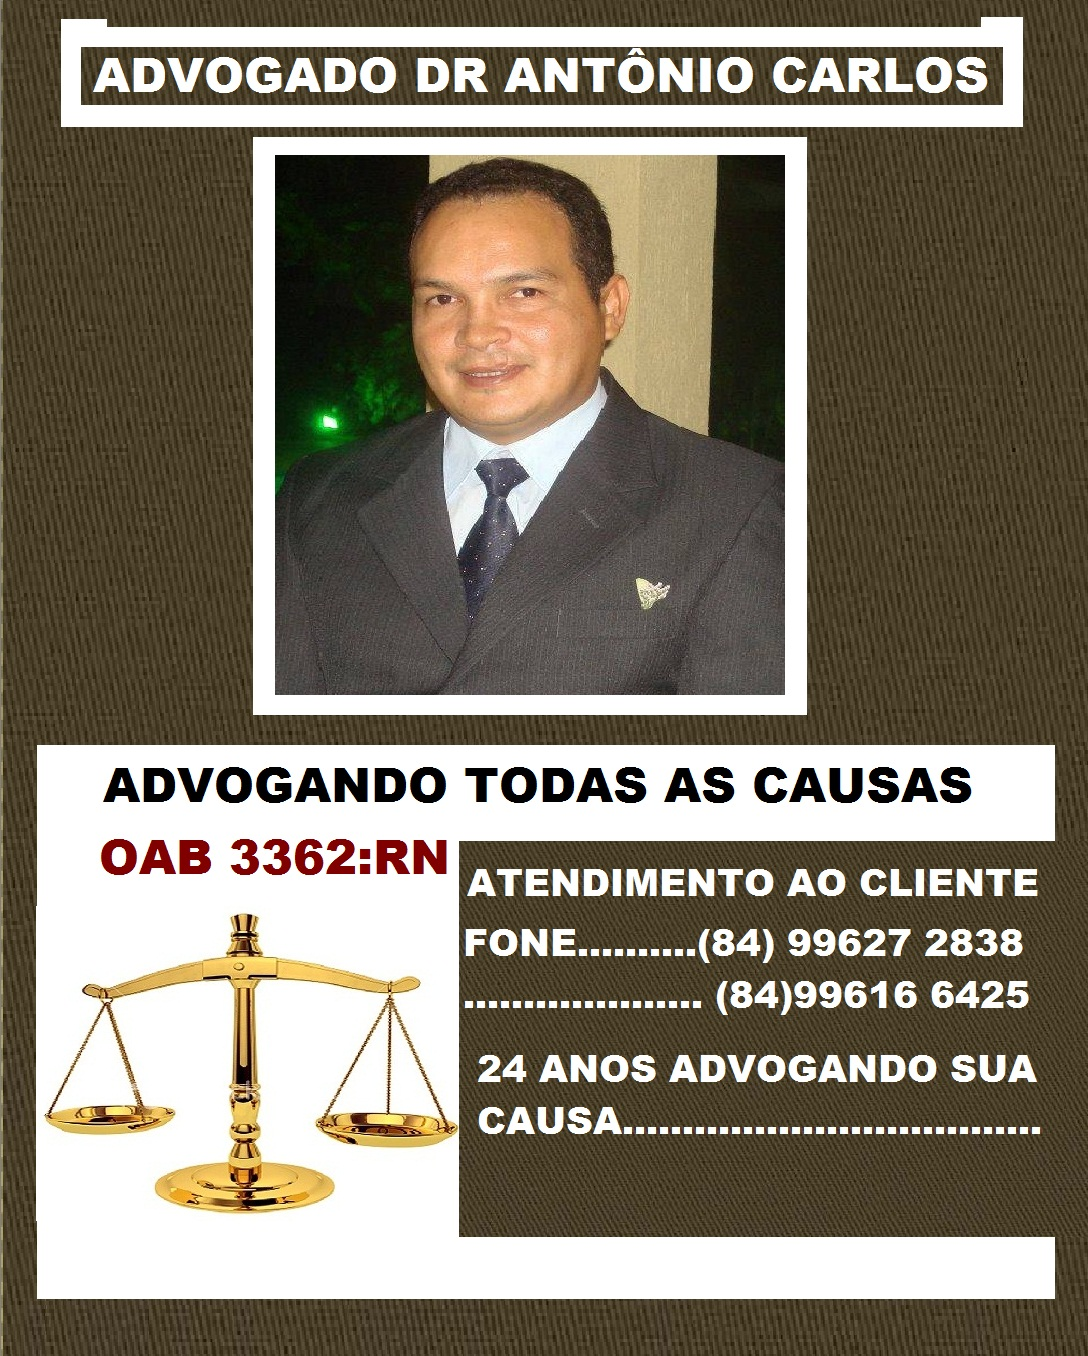 ADVOGADO DR ANTÔNIO CARLOS RN